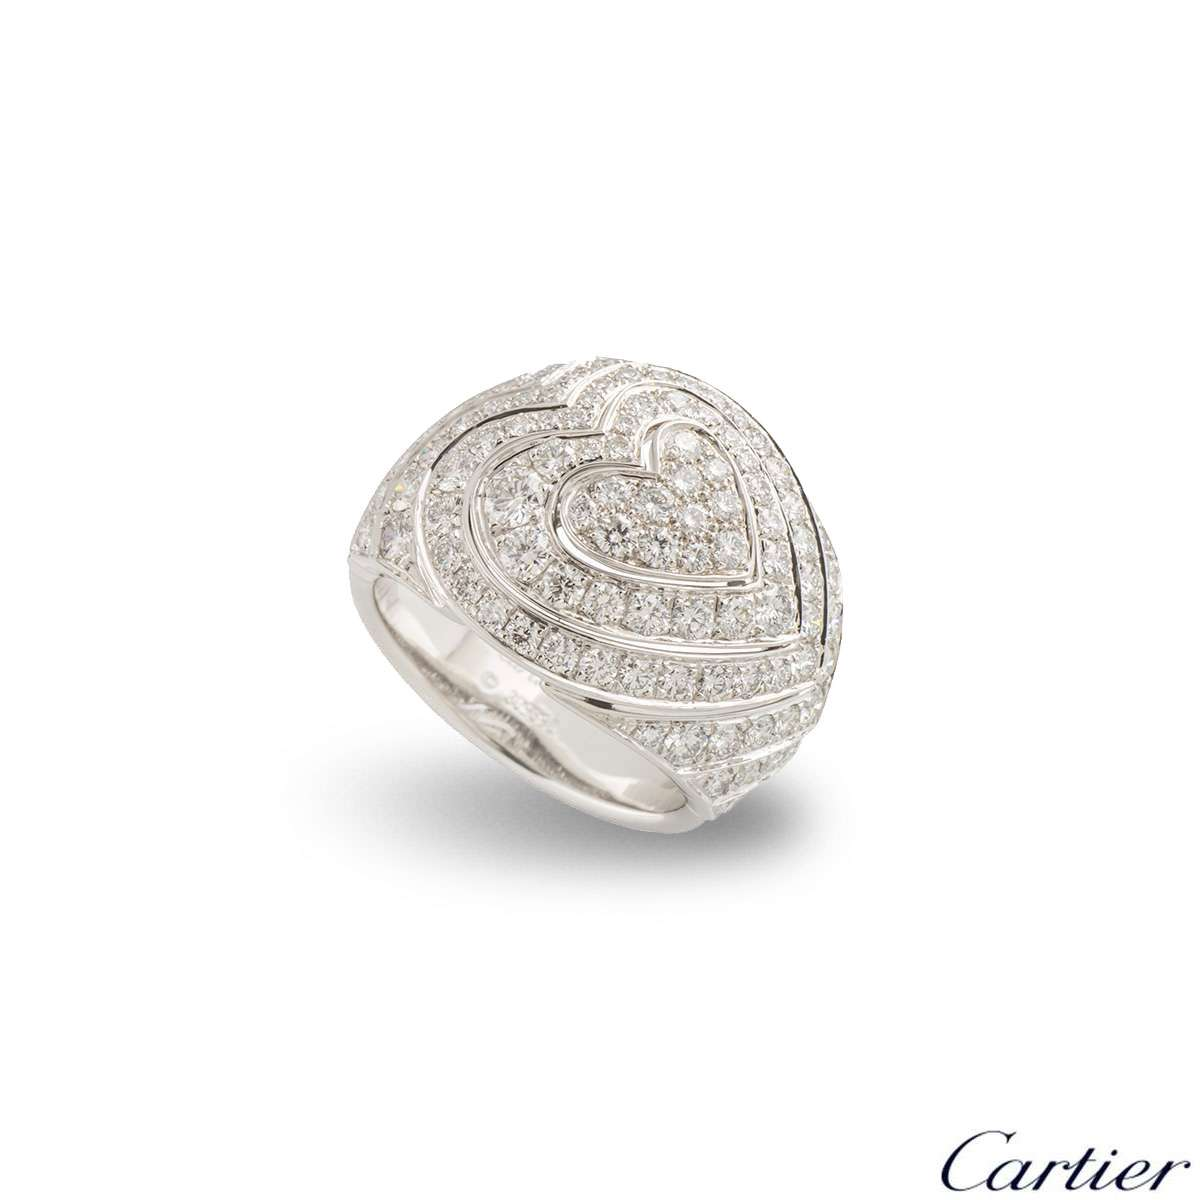 Cartier White Gold Diamond Heart Ring 1.67ct G+/VS+